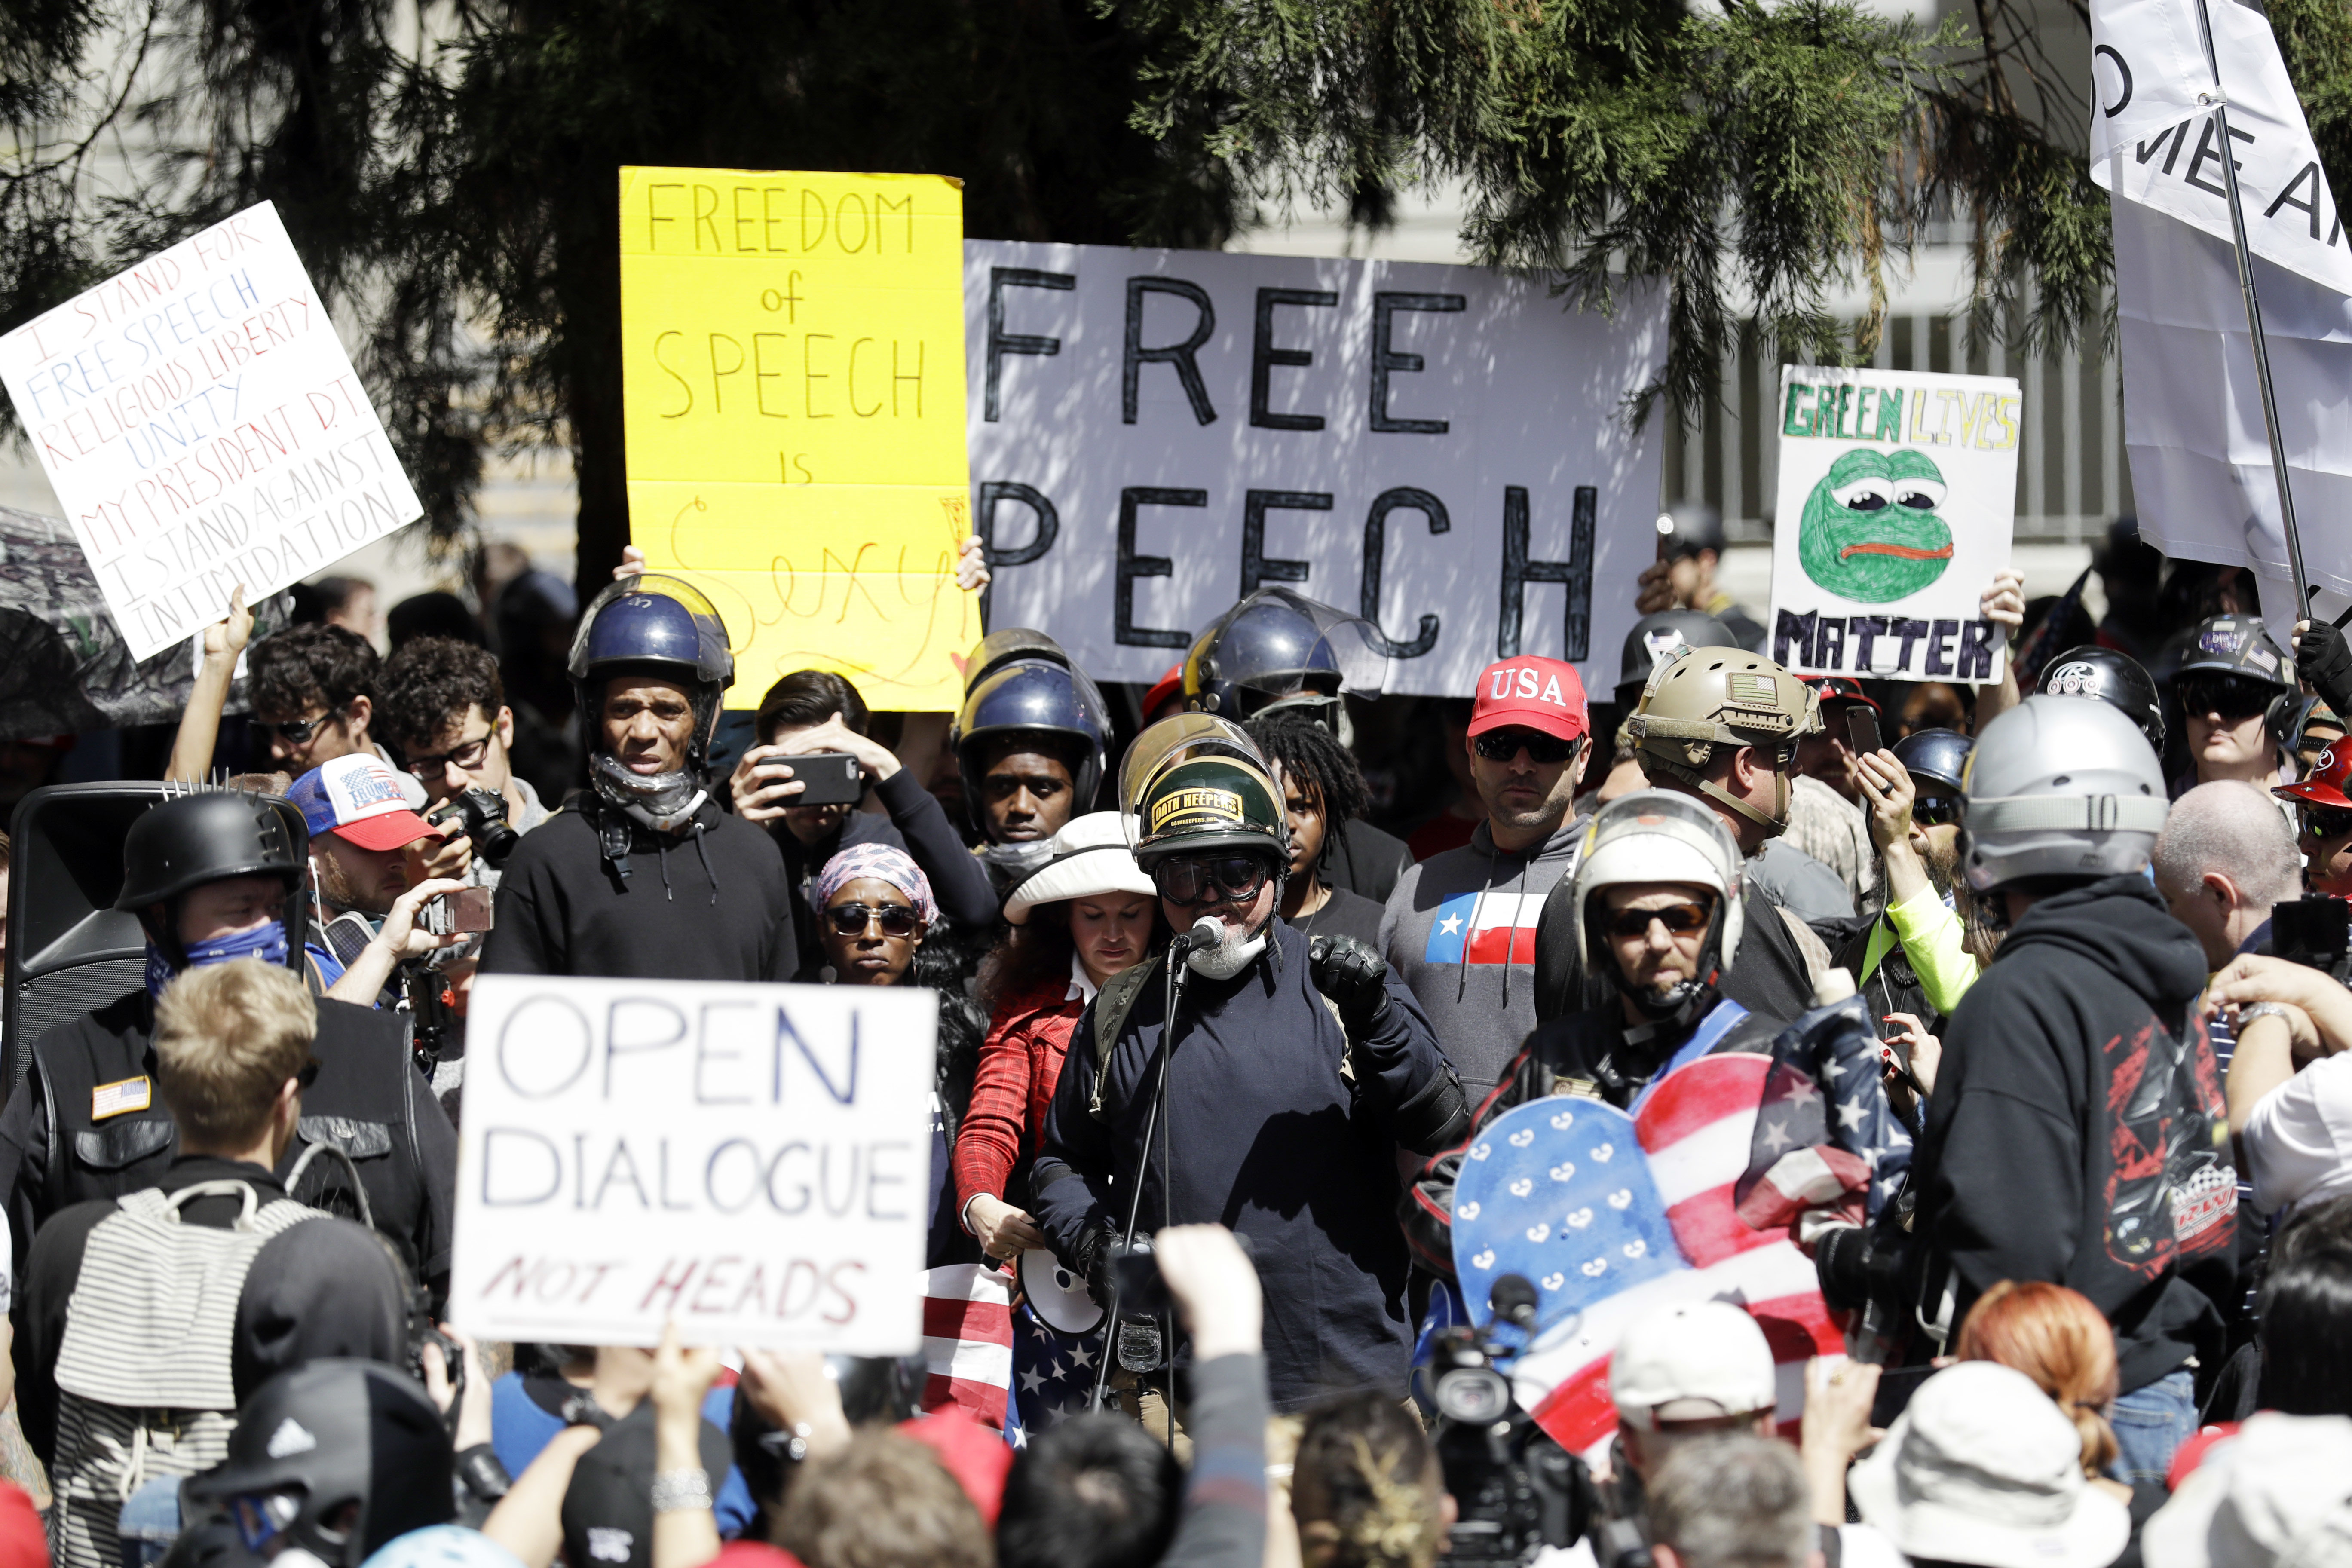 A crowd gathers around speakers during a rally for free speech April 27, 2017, in Berkeley, Calif. Demonstrators gathered near the University of California, Berkeley campus amid a strong police presence and rallied to show support for free speech and...